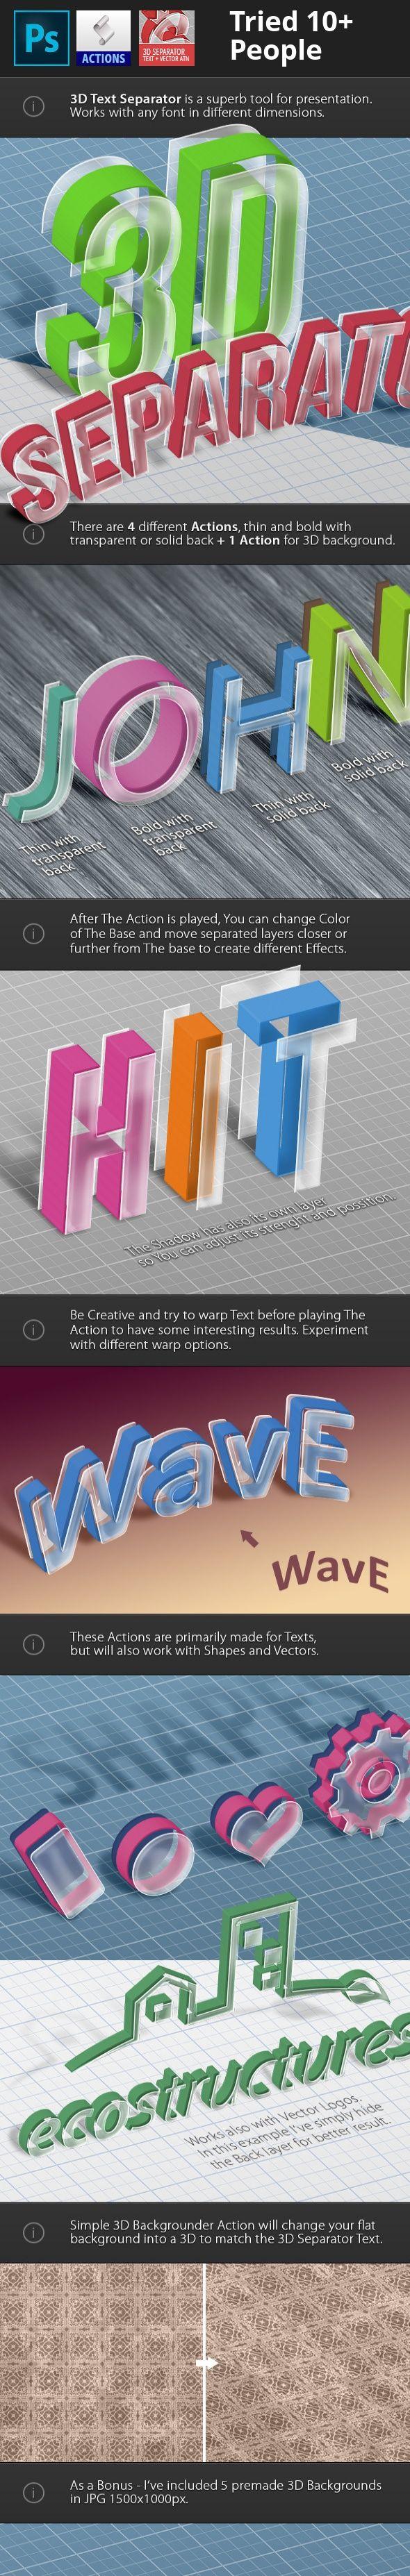 3d, 3d action, 3d atn, 3d background, 3d effect, 3d font, 3d logo, 3d maker, 3d mockup, 3d shapes, 3d text, 3d vector, action, glass effect, logo mockup, real 3d, separate, text action, transparent 3D Separator – Actions  New Generation of ATN Photoshop Actions are perfect for any kind of your project or presentation   3D Separator – Actions – Features   4 Different Separation Actions to choose from 2 different Weights with transparent or solid Back Layer 1 3D Background maker Action...